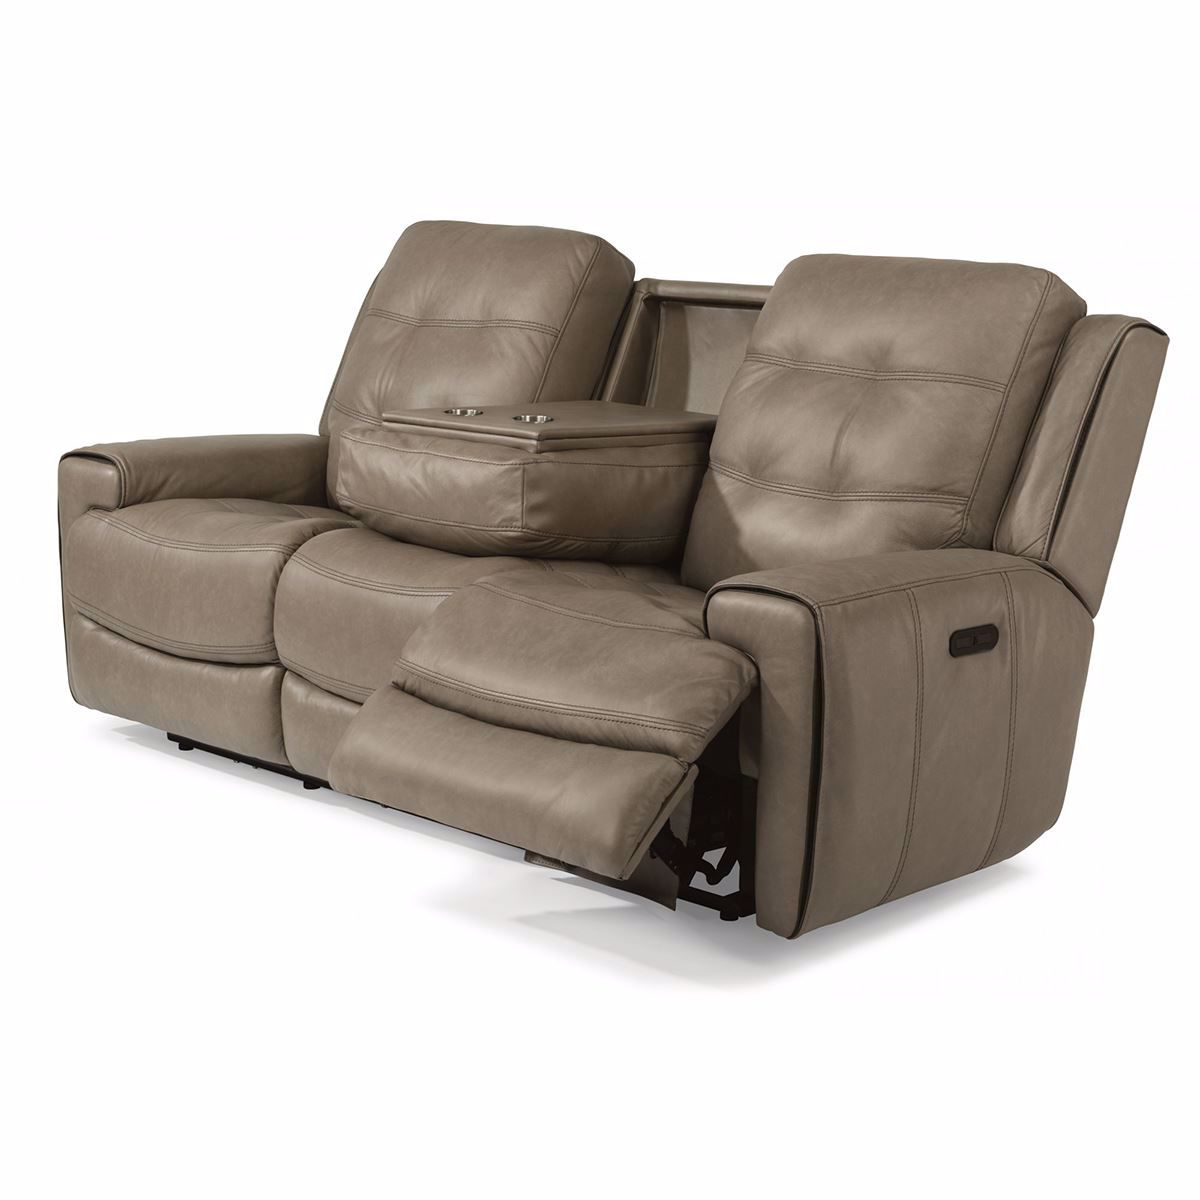 Charleston Power Reclining Sofas Throughout Newest Wicklow Power Reclining Leather Sofa With Power Headrest (View 1 of 15)